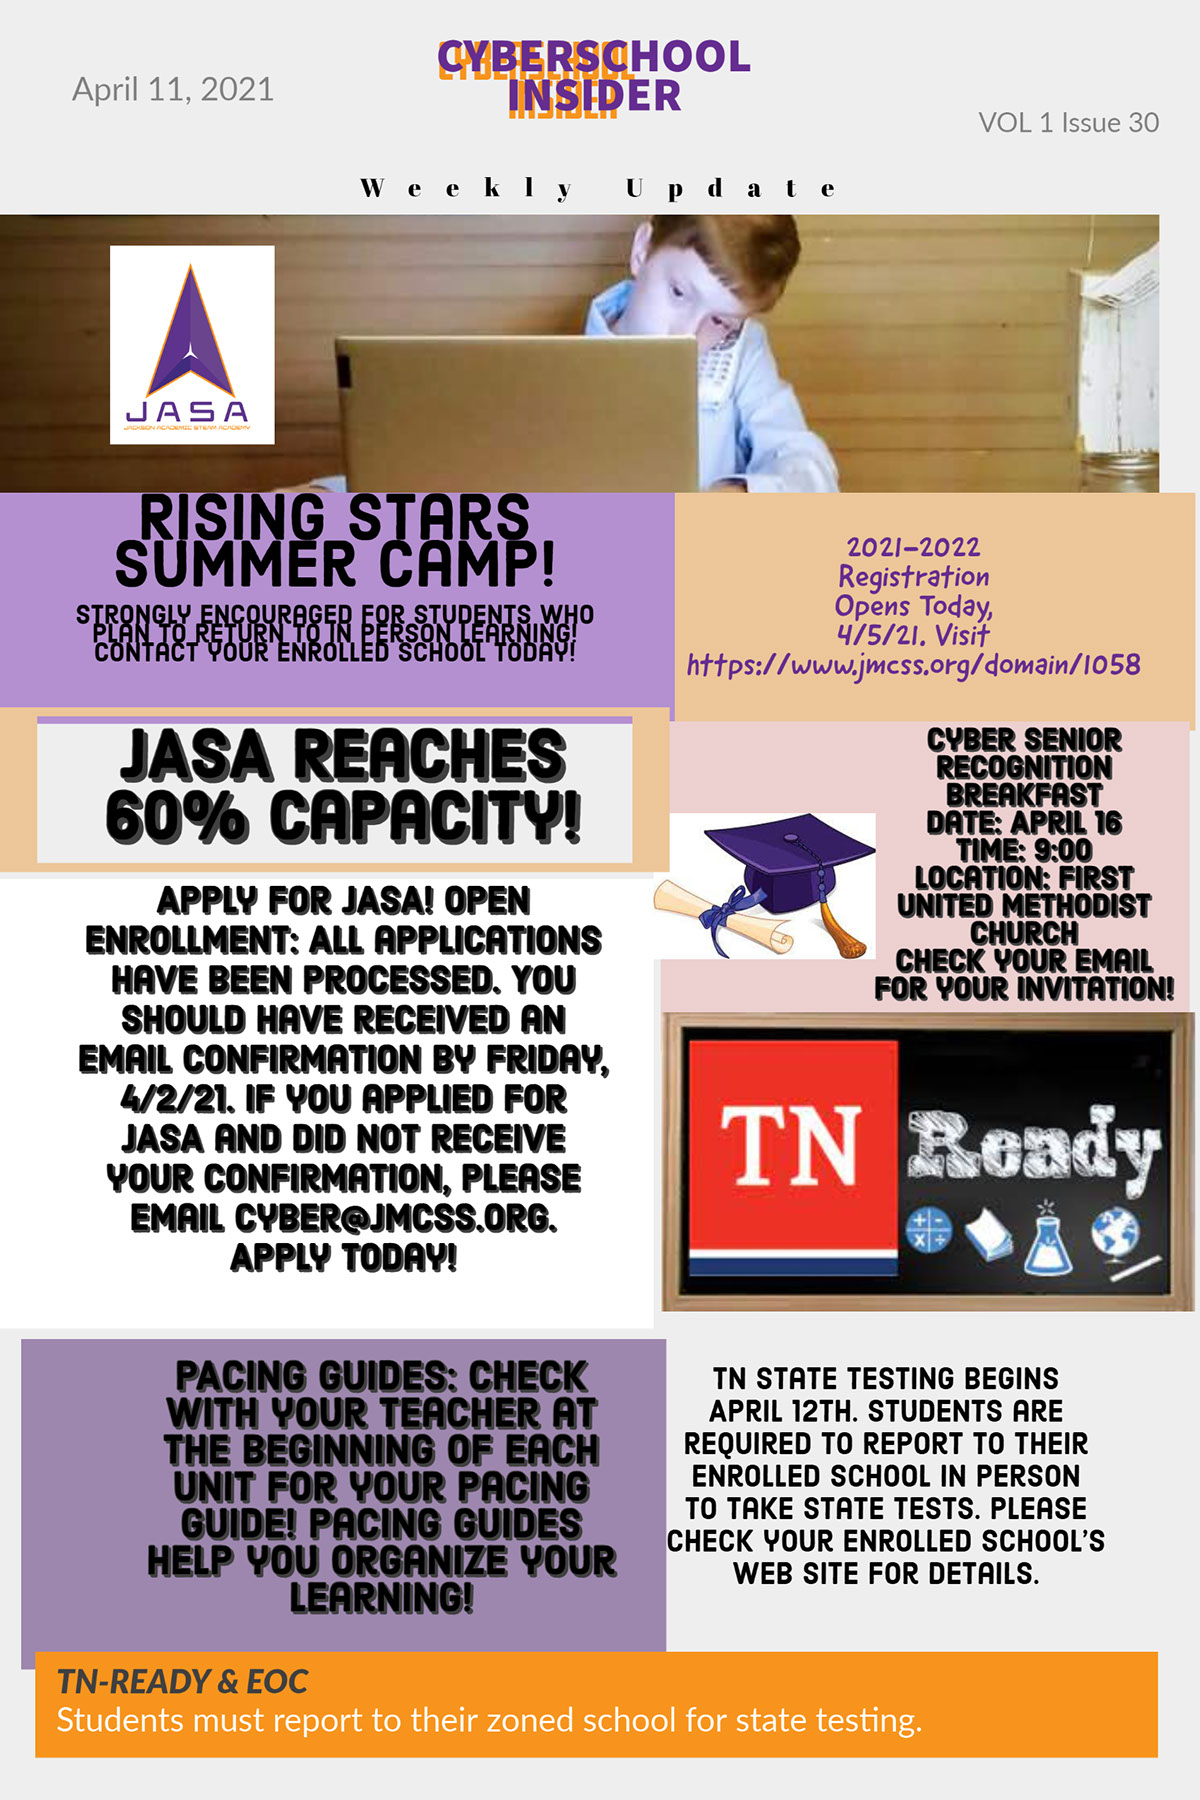 JASA Reaches 60% Capacity! JASA Reaches 60% Capacity! Rising Stars Summer Camp! CYBERSCHOOL INSIDER PACING GUIDES: Check with your teacher at the beginning of each unit for your Pacing Guide! Pacing Guides help you organize your learning! Weekly Update Apply for JASA! Open Enrollment: All applications have been processed. You should have received an email confirmation by Friday, 4/2/21. If you applied for JASA and did not receive your confirmation, please email cyber@Jmcss.org. Apply today! TN-READY & EOC Students must report to their zoned school for state testing. Cyber Senior Recognition Breakfast Date: April 16 Time: 9:00 Location: First United Methodist Church Check your email for your invitation! April 11, 2021 TN State Testing Begins April 12th. Students are required to report to their Enrolled School in person to take state tests. Please check your enrolled school's web site for details. 2021-2022 Registration Opens Today, 4/5/21. Visit https://www.jmcss.org/domain/1058 Strongly encouraged for students who plan to return to In Person learning! Contact your enrolled school today! VOL 1 Issue 30